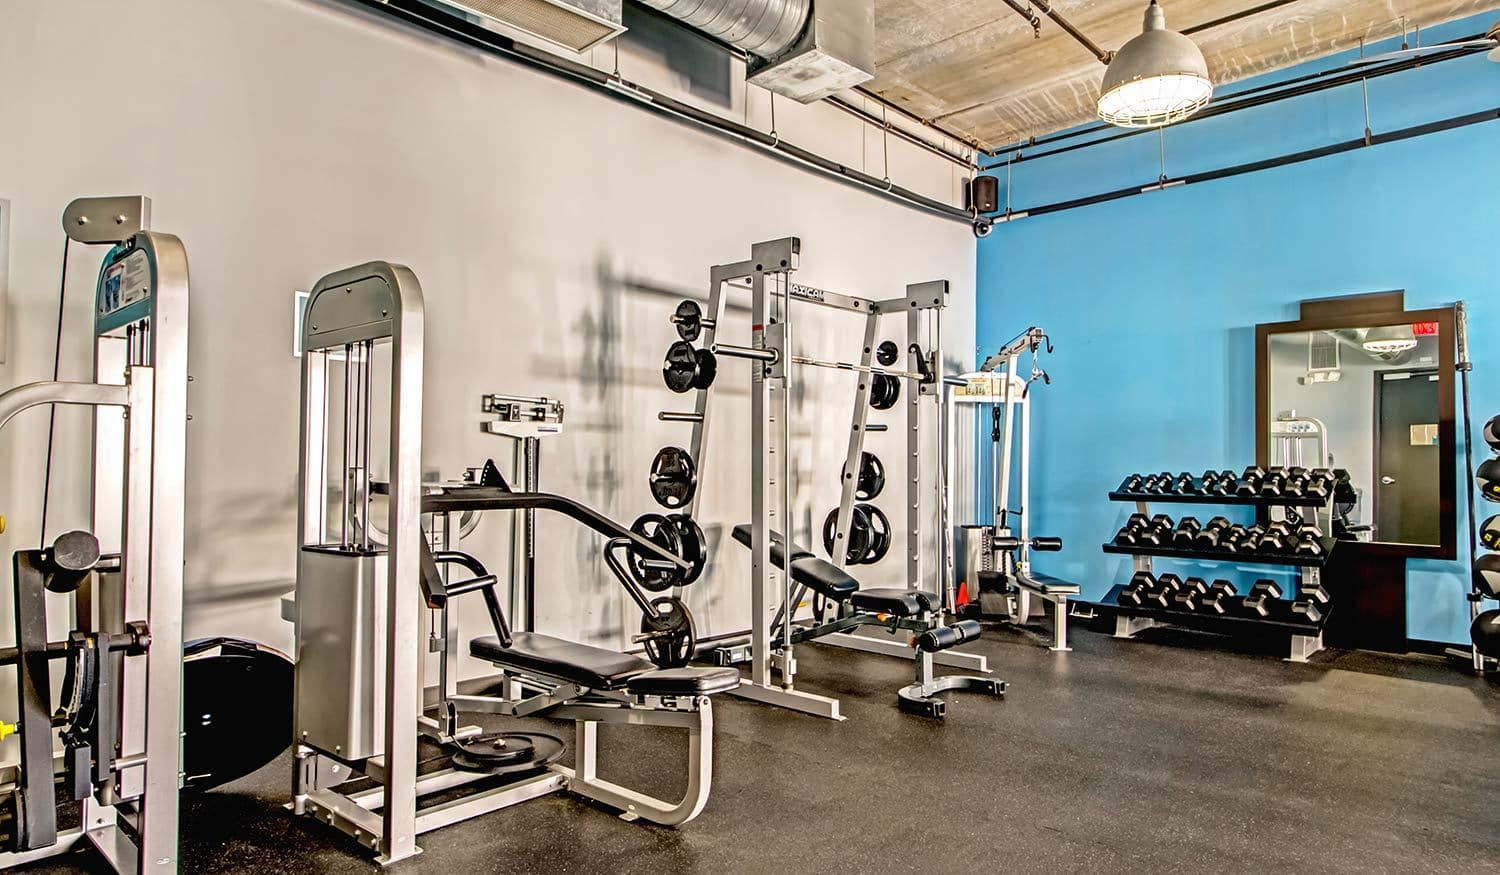 State-of-the-art fitness center at The Exchange Lofts in Fort Lauderdale, Florida